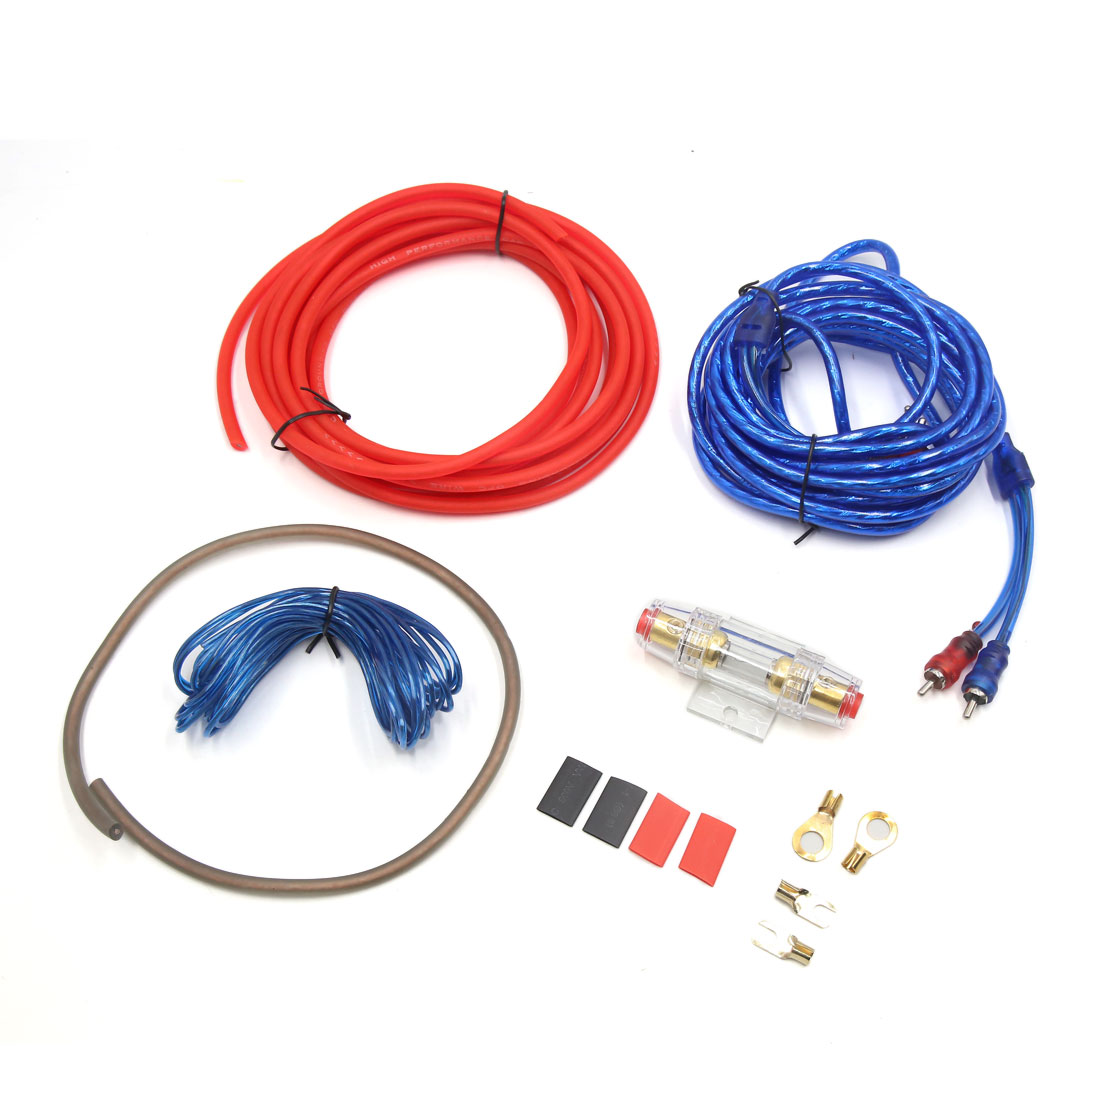 4.5-5m Audio Subwoofer 10 Gauge Amplifier Wiring Kit RCA Power Cable for Vehicle